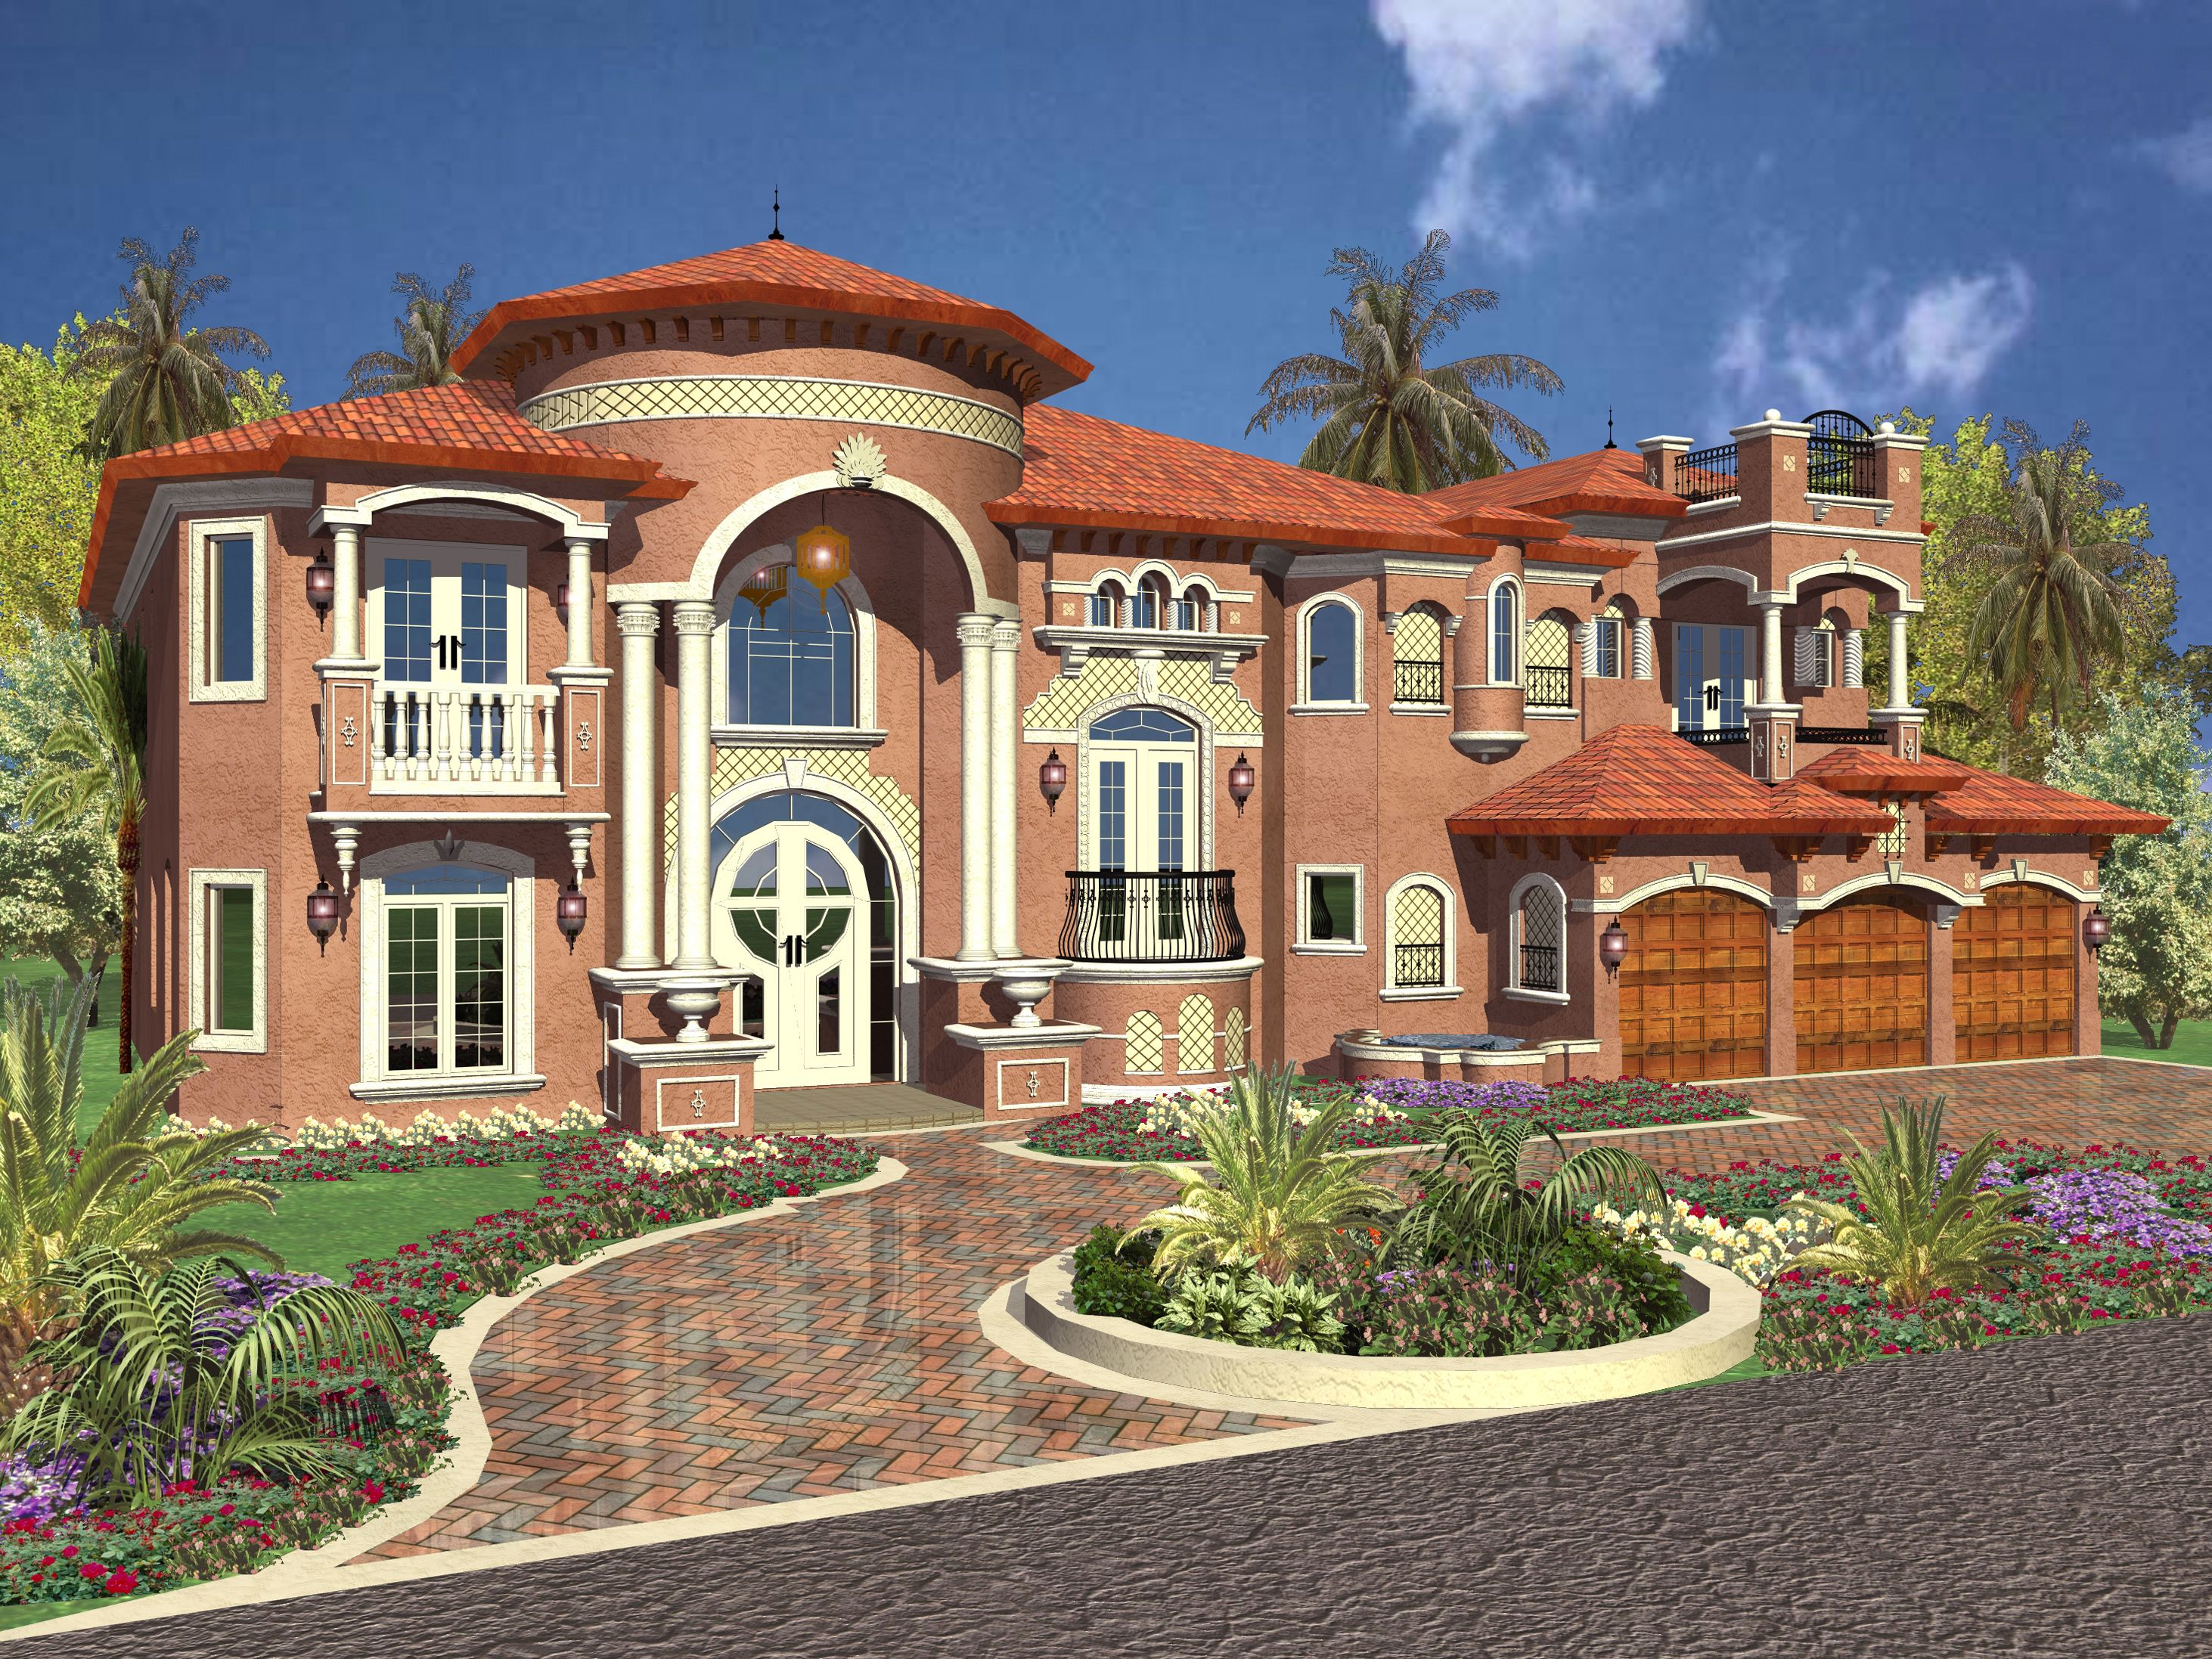 Plan 32106aa Luxurious Mediterranean Styling House Plans With Pictures Luxury House Plans Mediterranean Style House Plans